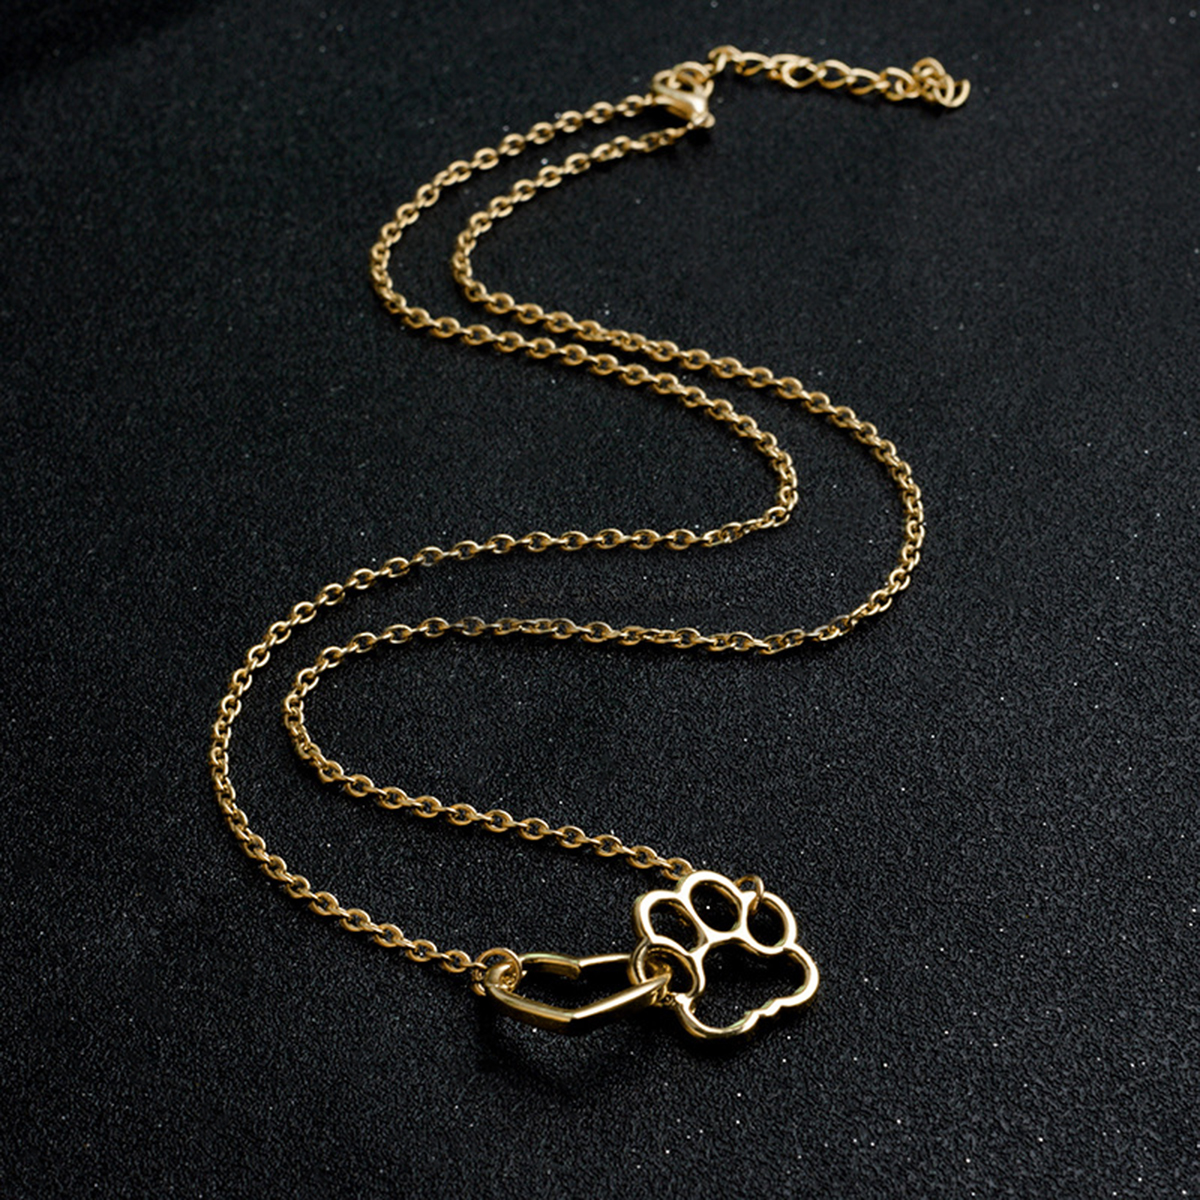 SALE HOLLOW PET PAW FOOTPRINT NECKLACES FOR CAT LOVERS-Cat Jewelry-Free Shipping SALE HOLLOW PET PAW FOOTPRINT NECKLACES FOR CAT LOVERS-Cat Jewelry-Free Shipping HTB1iLEXRpXXXXXPXVXXq6xXFXXXJ